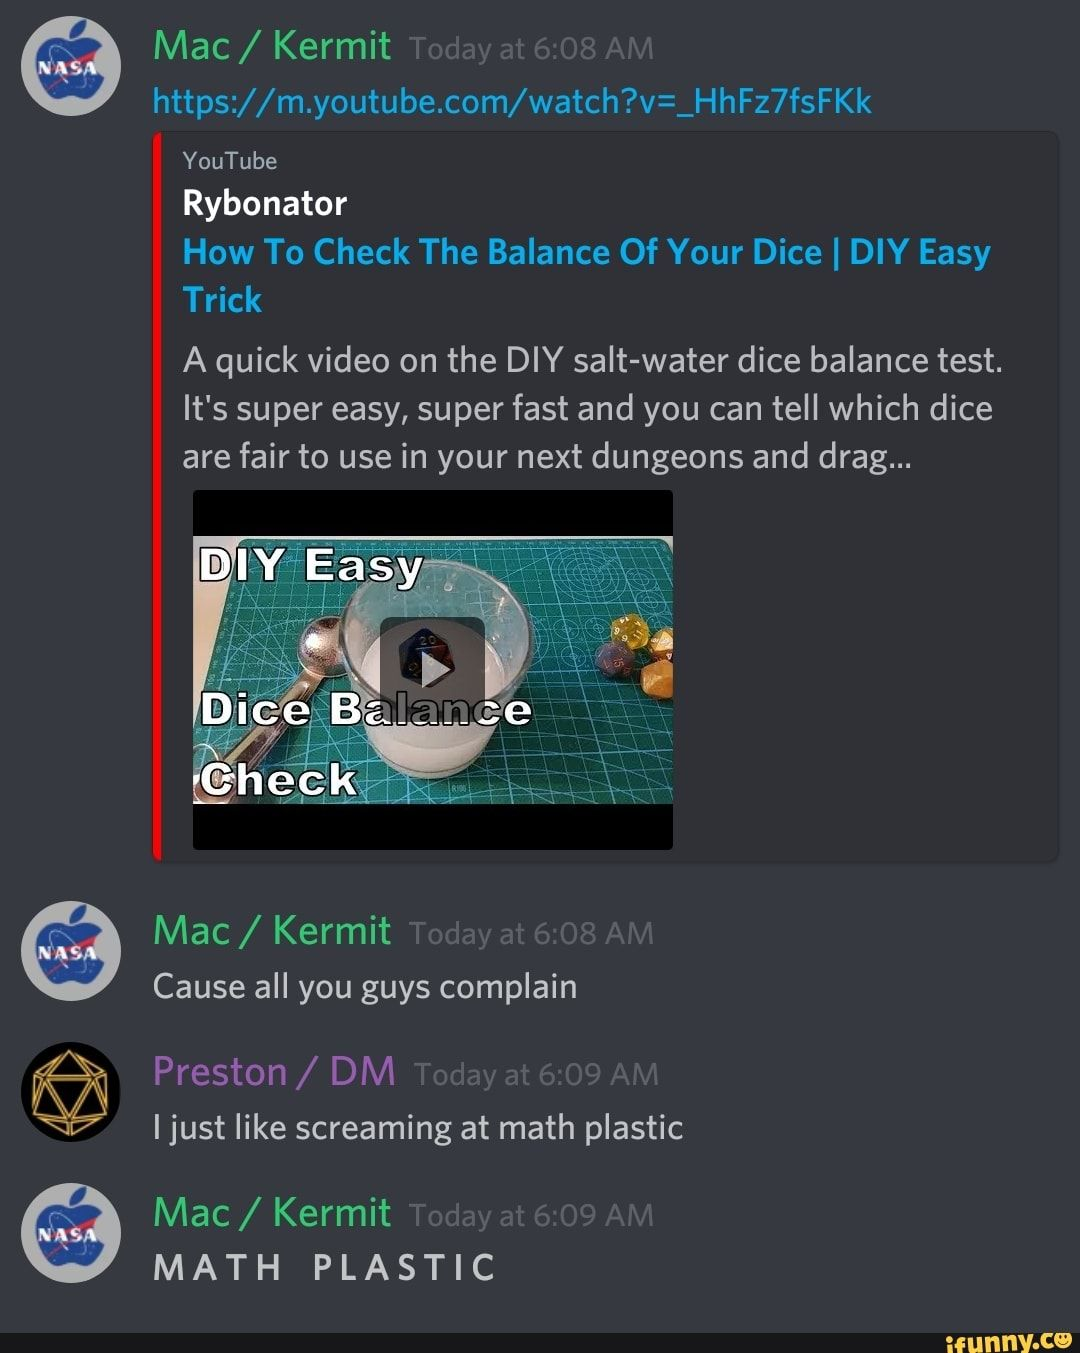 Https M Y0utube C0m Watch V Hth7stkk Youtube Rybonator How To Check The Balance Of Your Dice I Diy Easy Trick A Quick Video On The Diy Salt Water Dice Bala Simple Tricks Youtube Super Easy